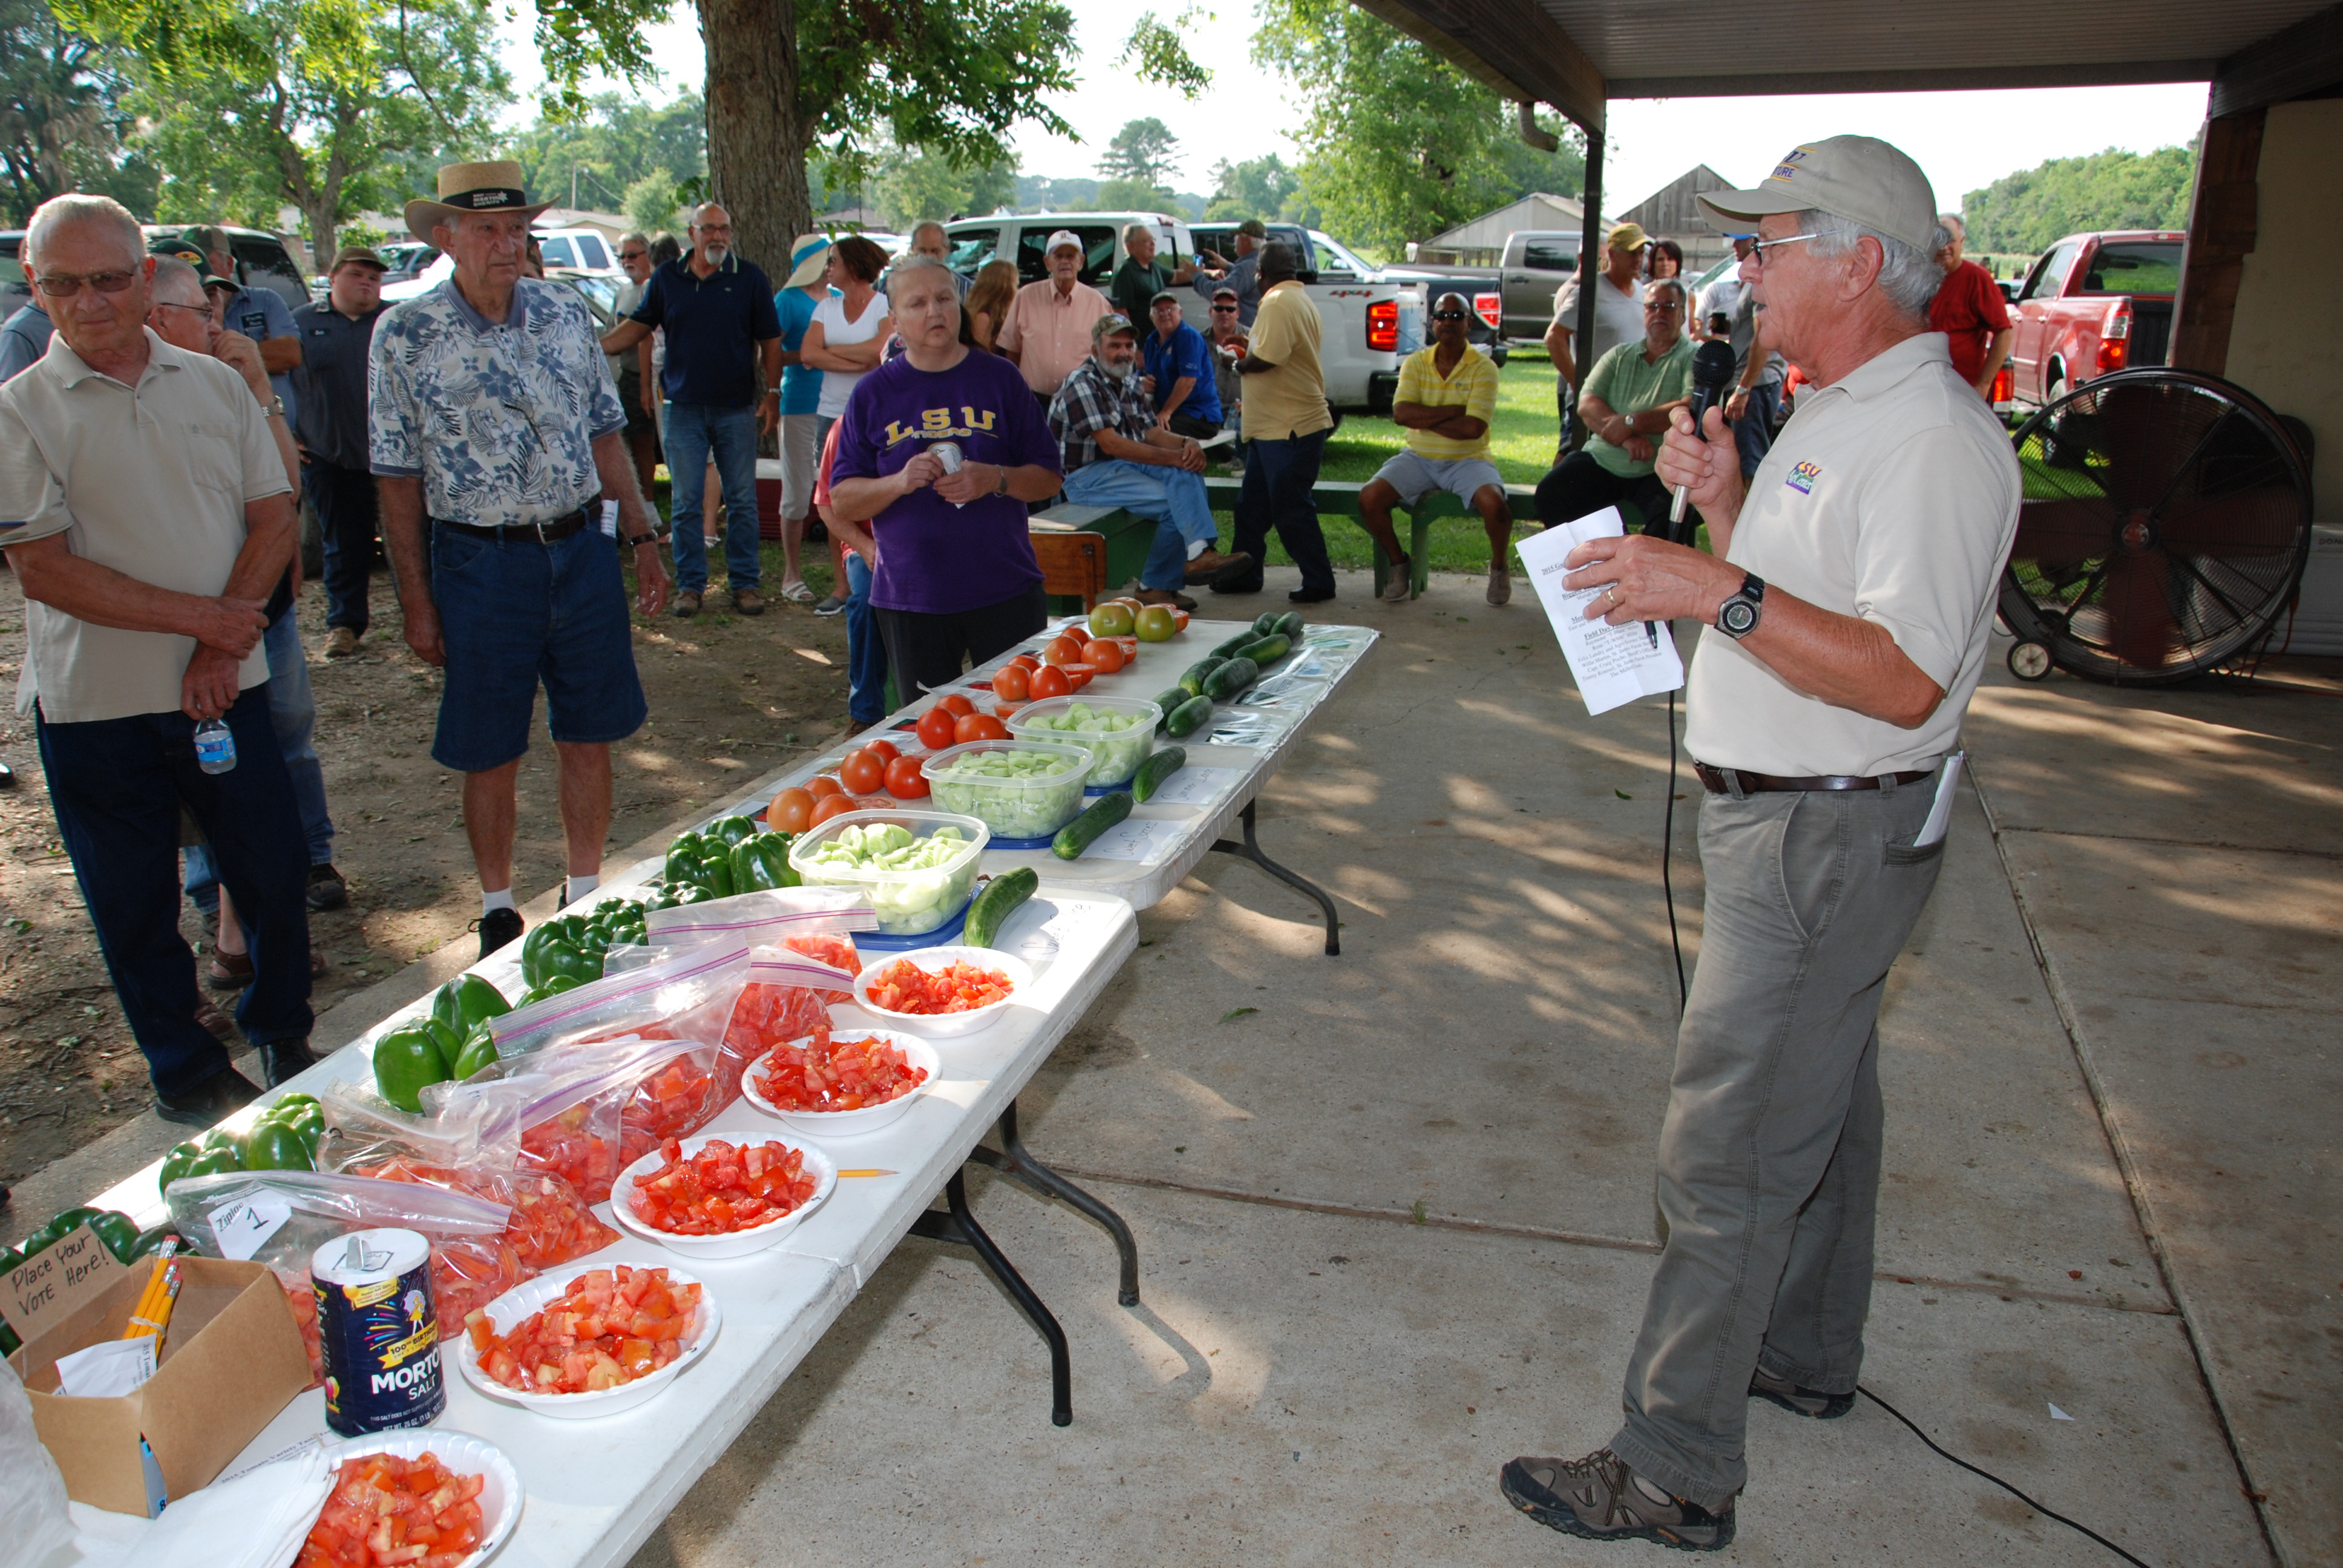 Annual Tomato Field Day Grows into Popular Community Event